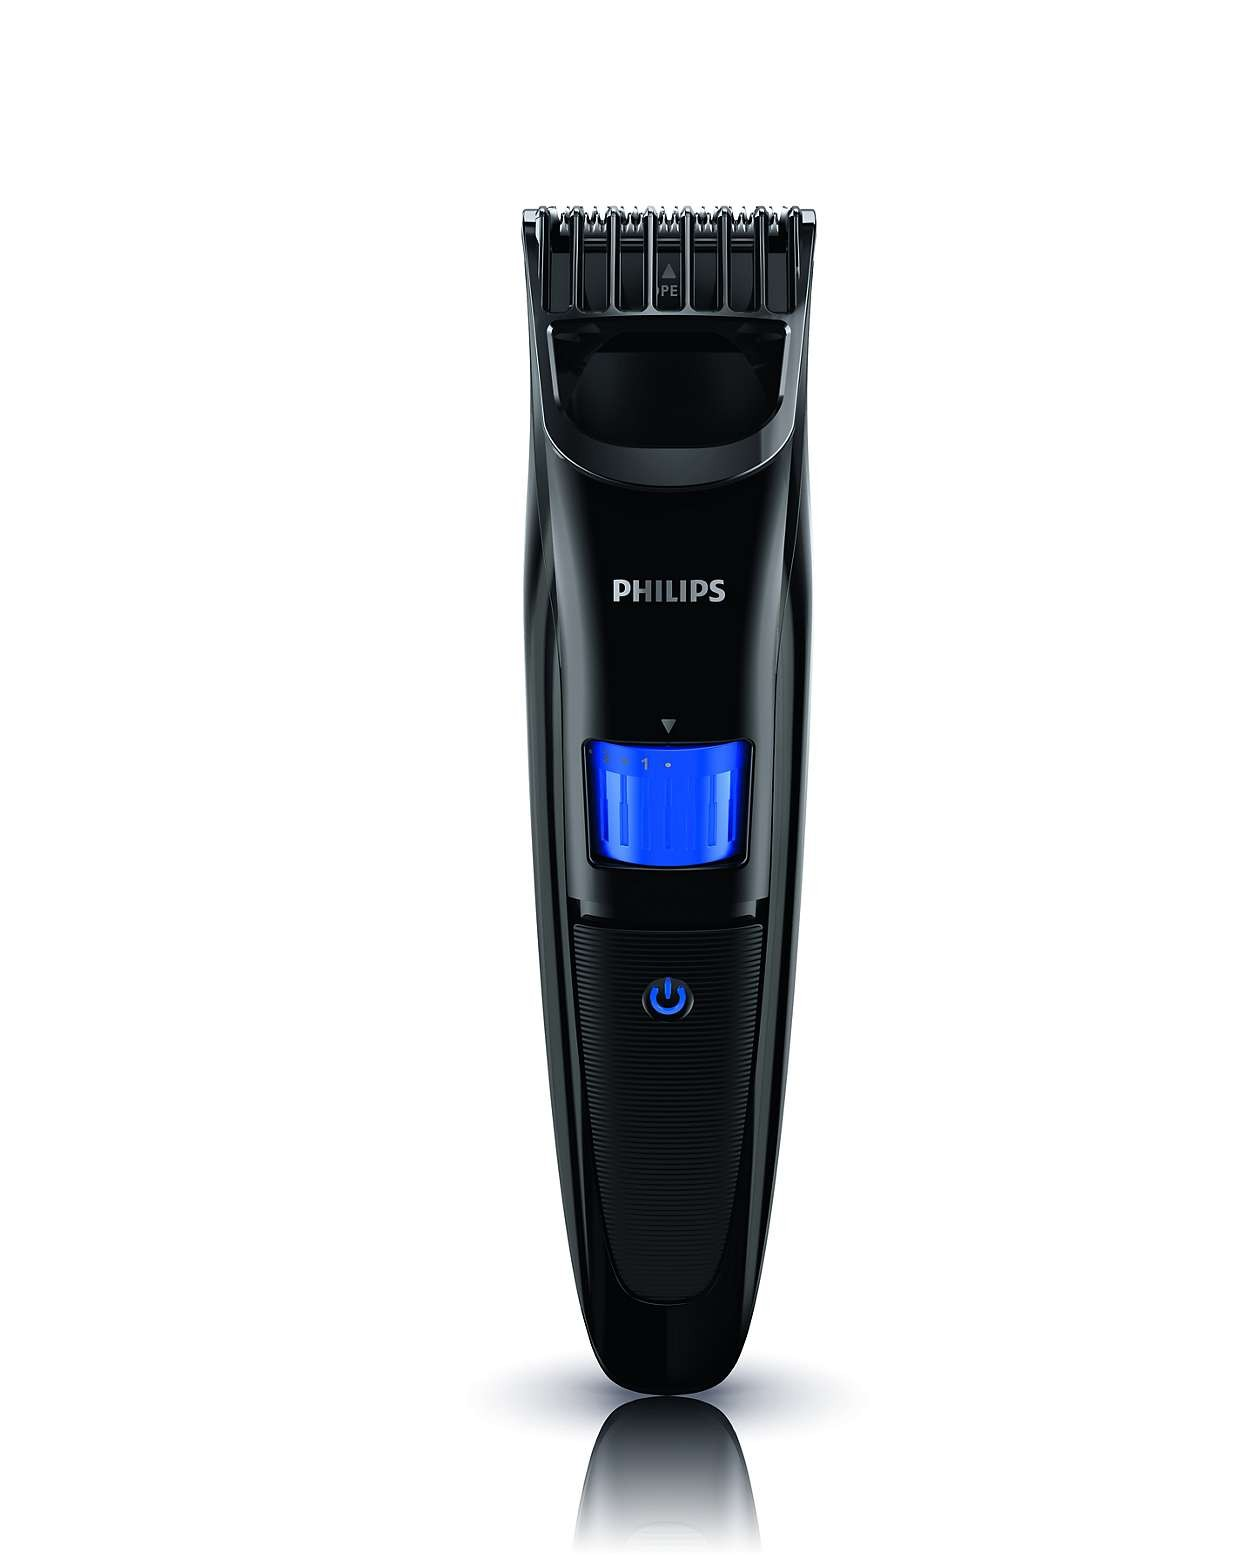 philips beard trimmer qt4000 15 kitchenwarehub. Black Bedroom Furniture Sets. Home Design Ideas